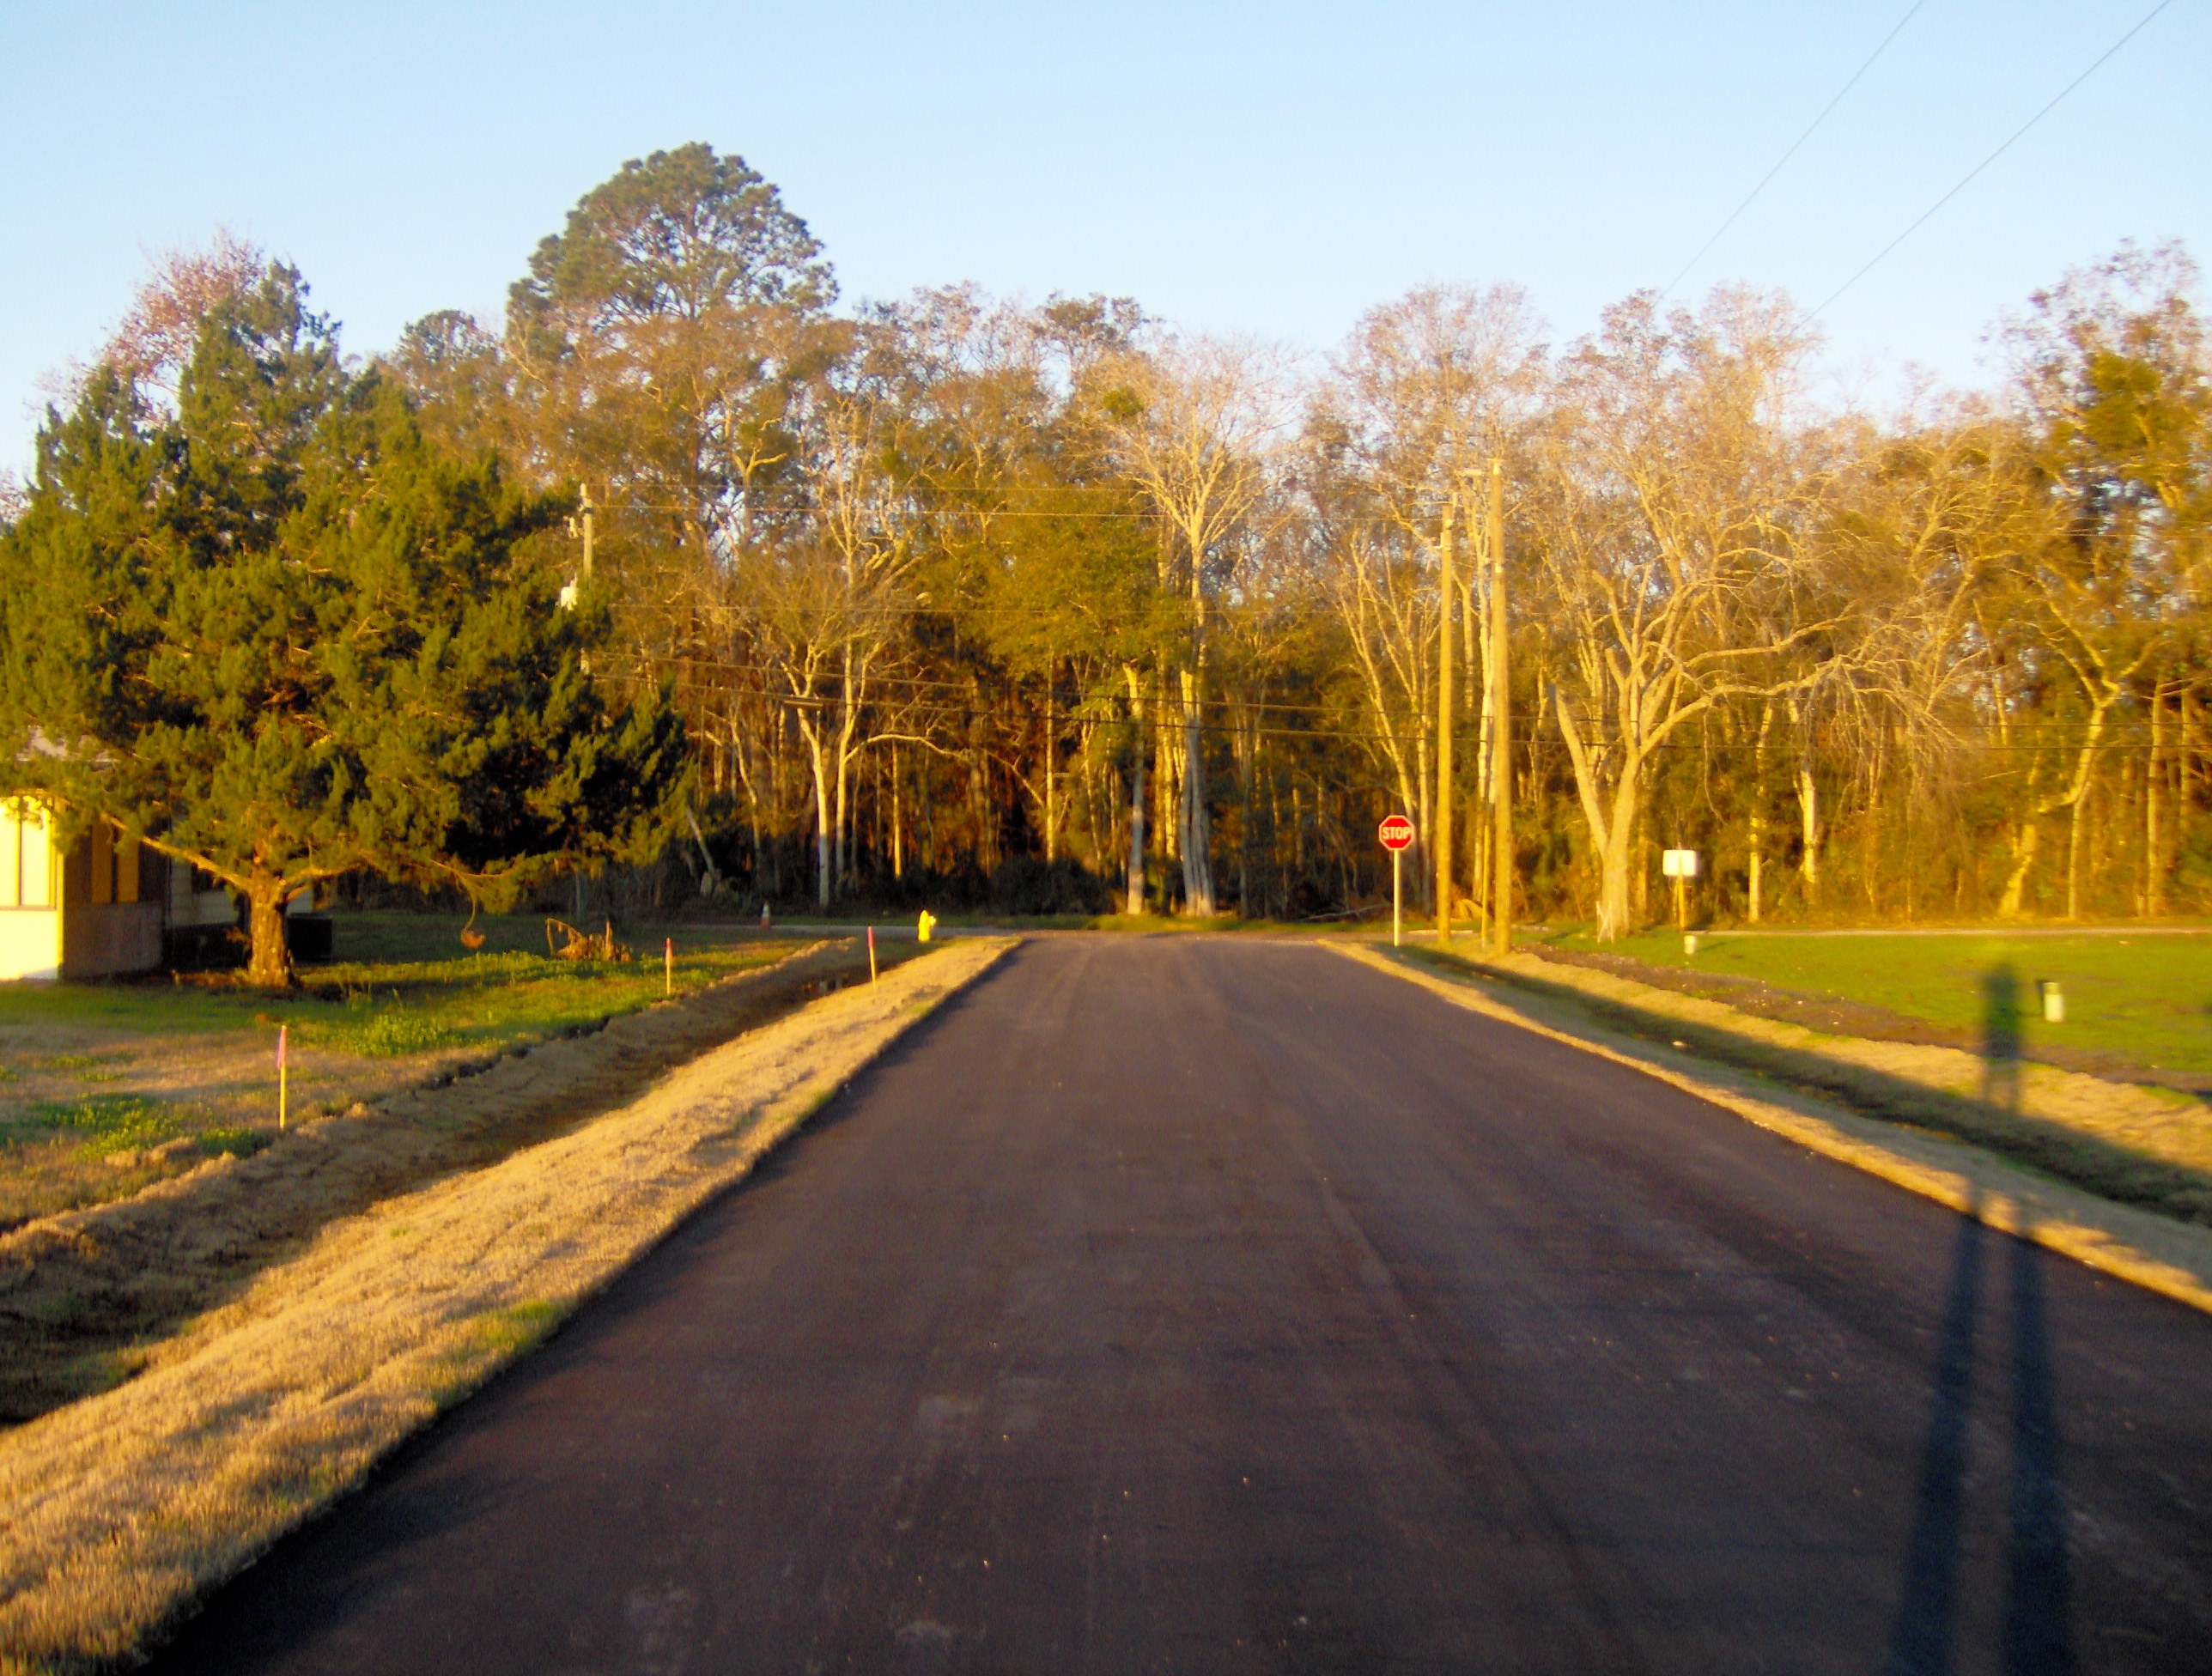 The west entrance to Carolina & North Peach Tree roads showing a fresh, black paved road